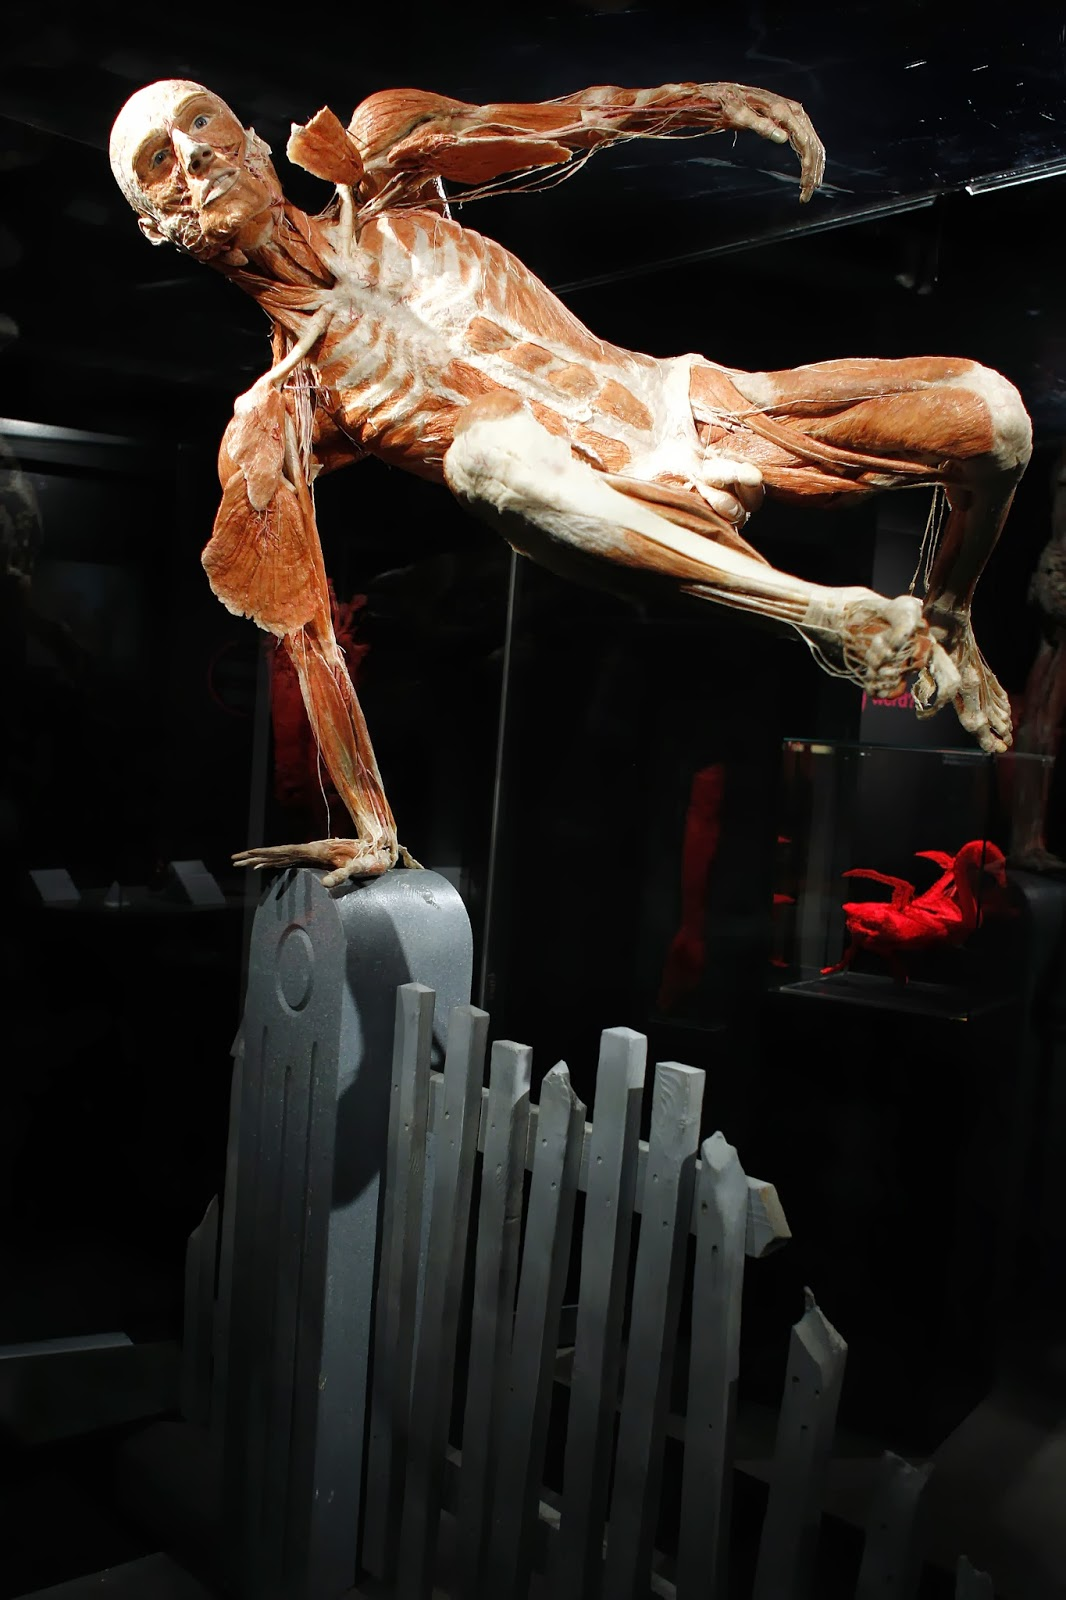 Body Worlds, Happiness, Project, Plastinated, Body, Human, Exhibition, Permanent, German,  Anatomist, Inventor, Technique, Gunther von Hagens, Amsterdam, Creation, Offbeat, Museum, Creator, Medical, Health, Education,